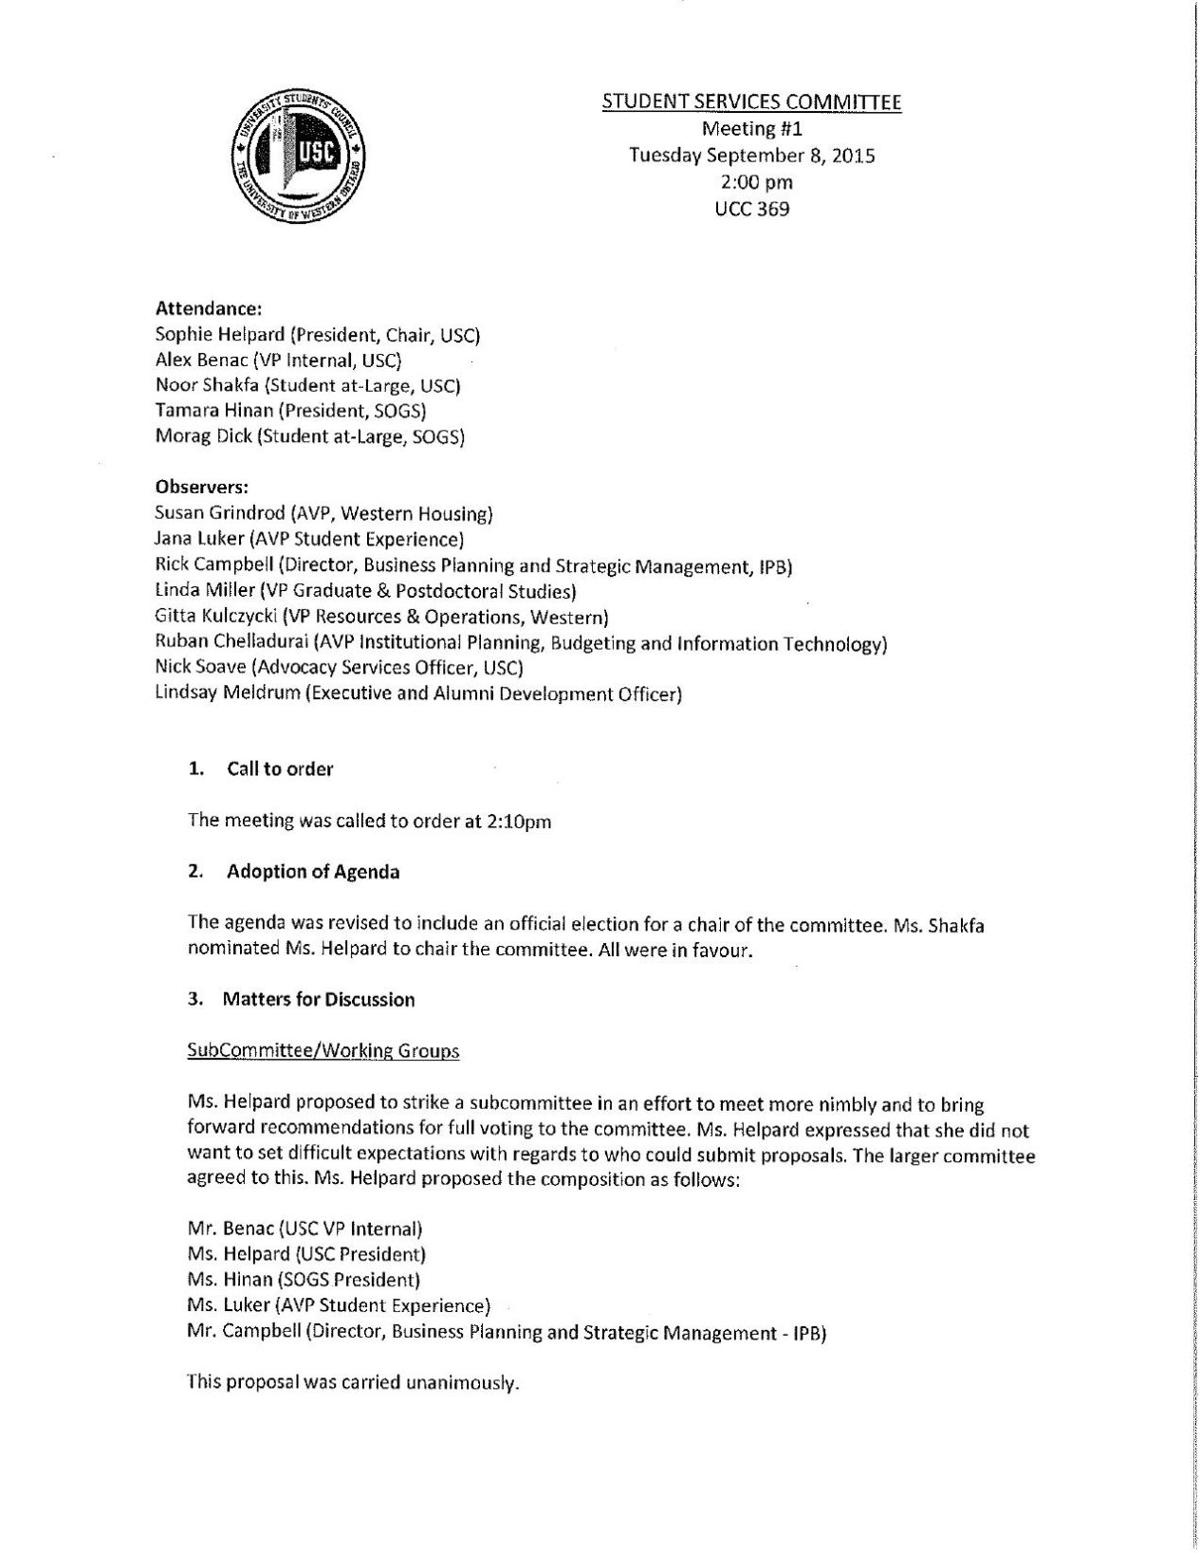 Student Services Committee September 8, 2015